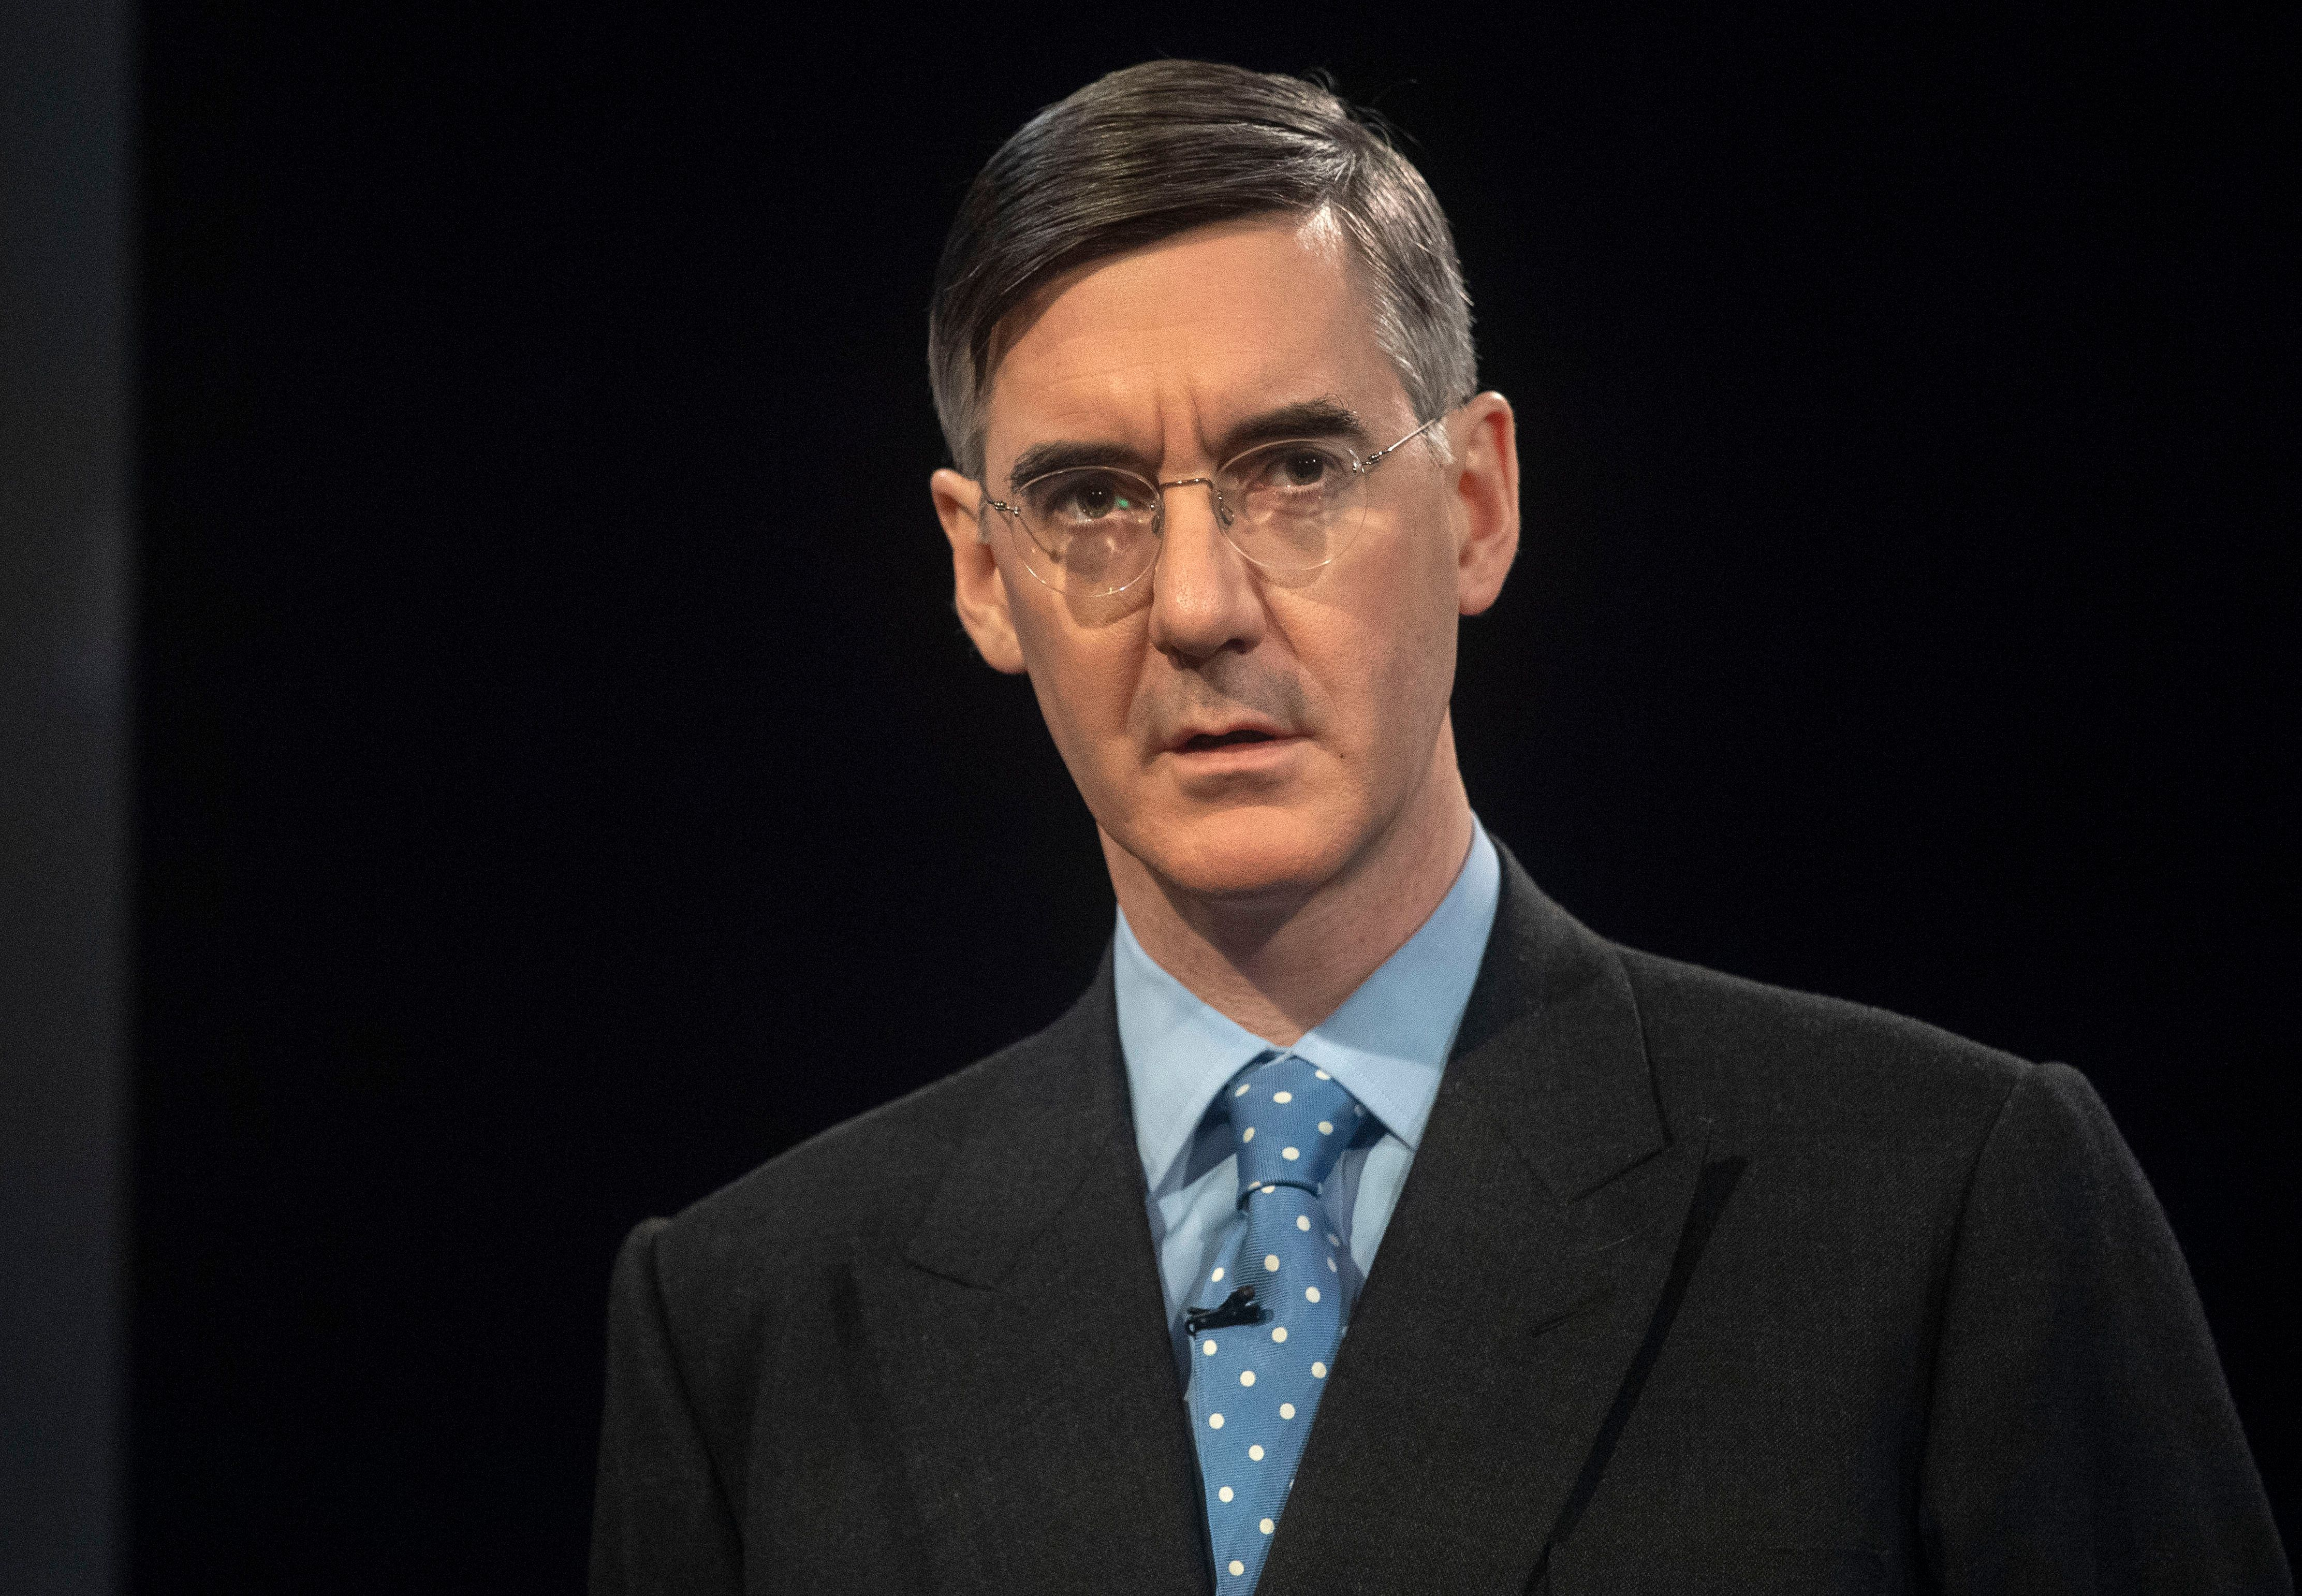 Jacob Rees-Mogg has called for a